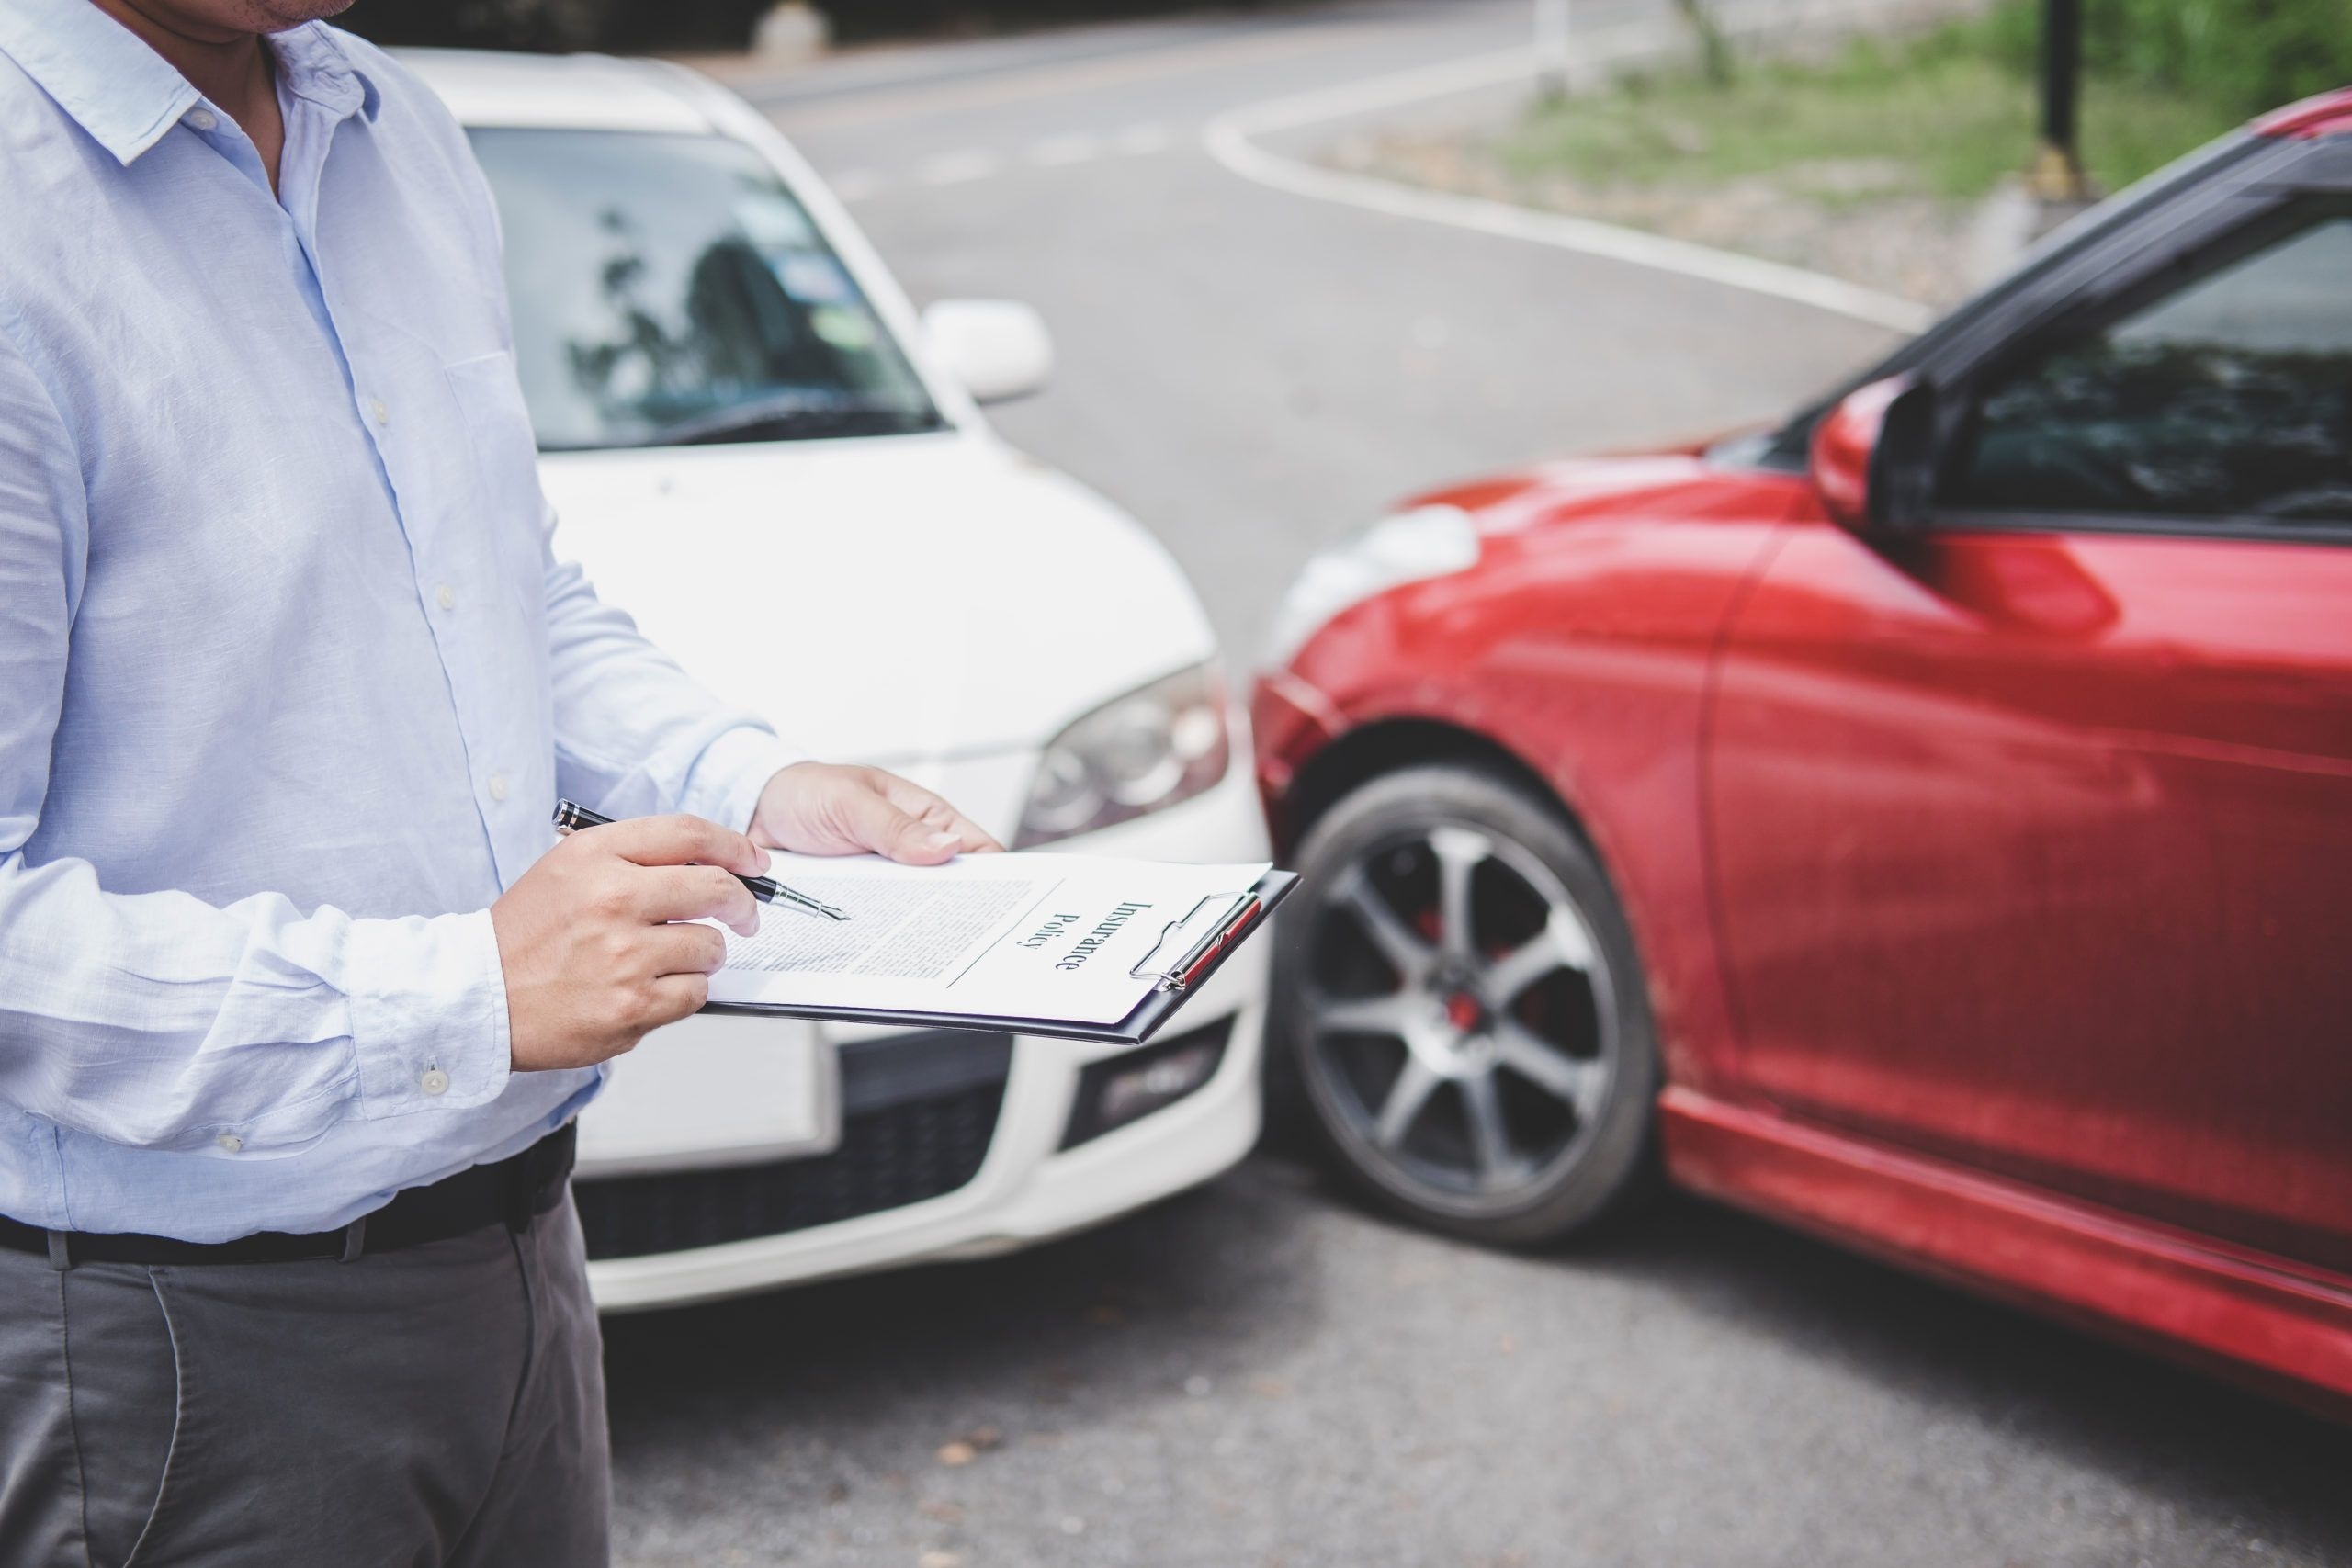 Are Car Accidents Covered Under Workers' Compensation in Arizona? - Matt Fendon Law Group